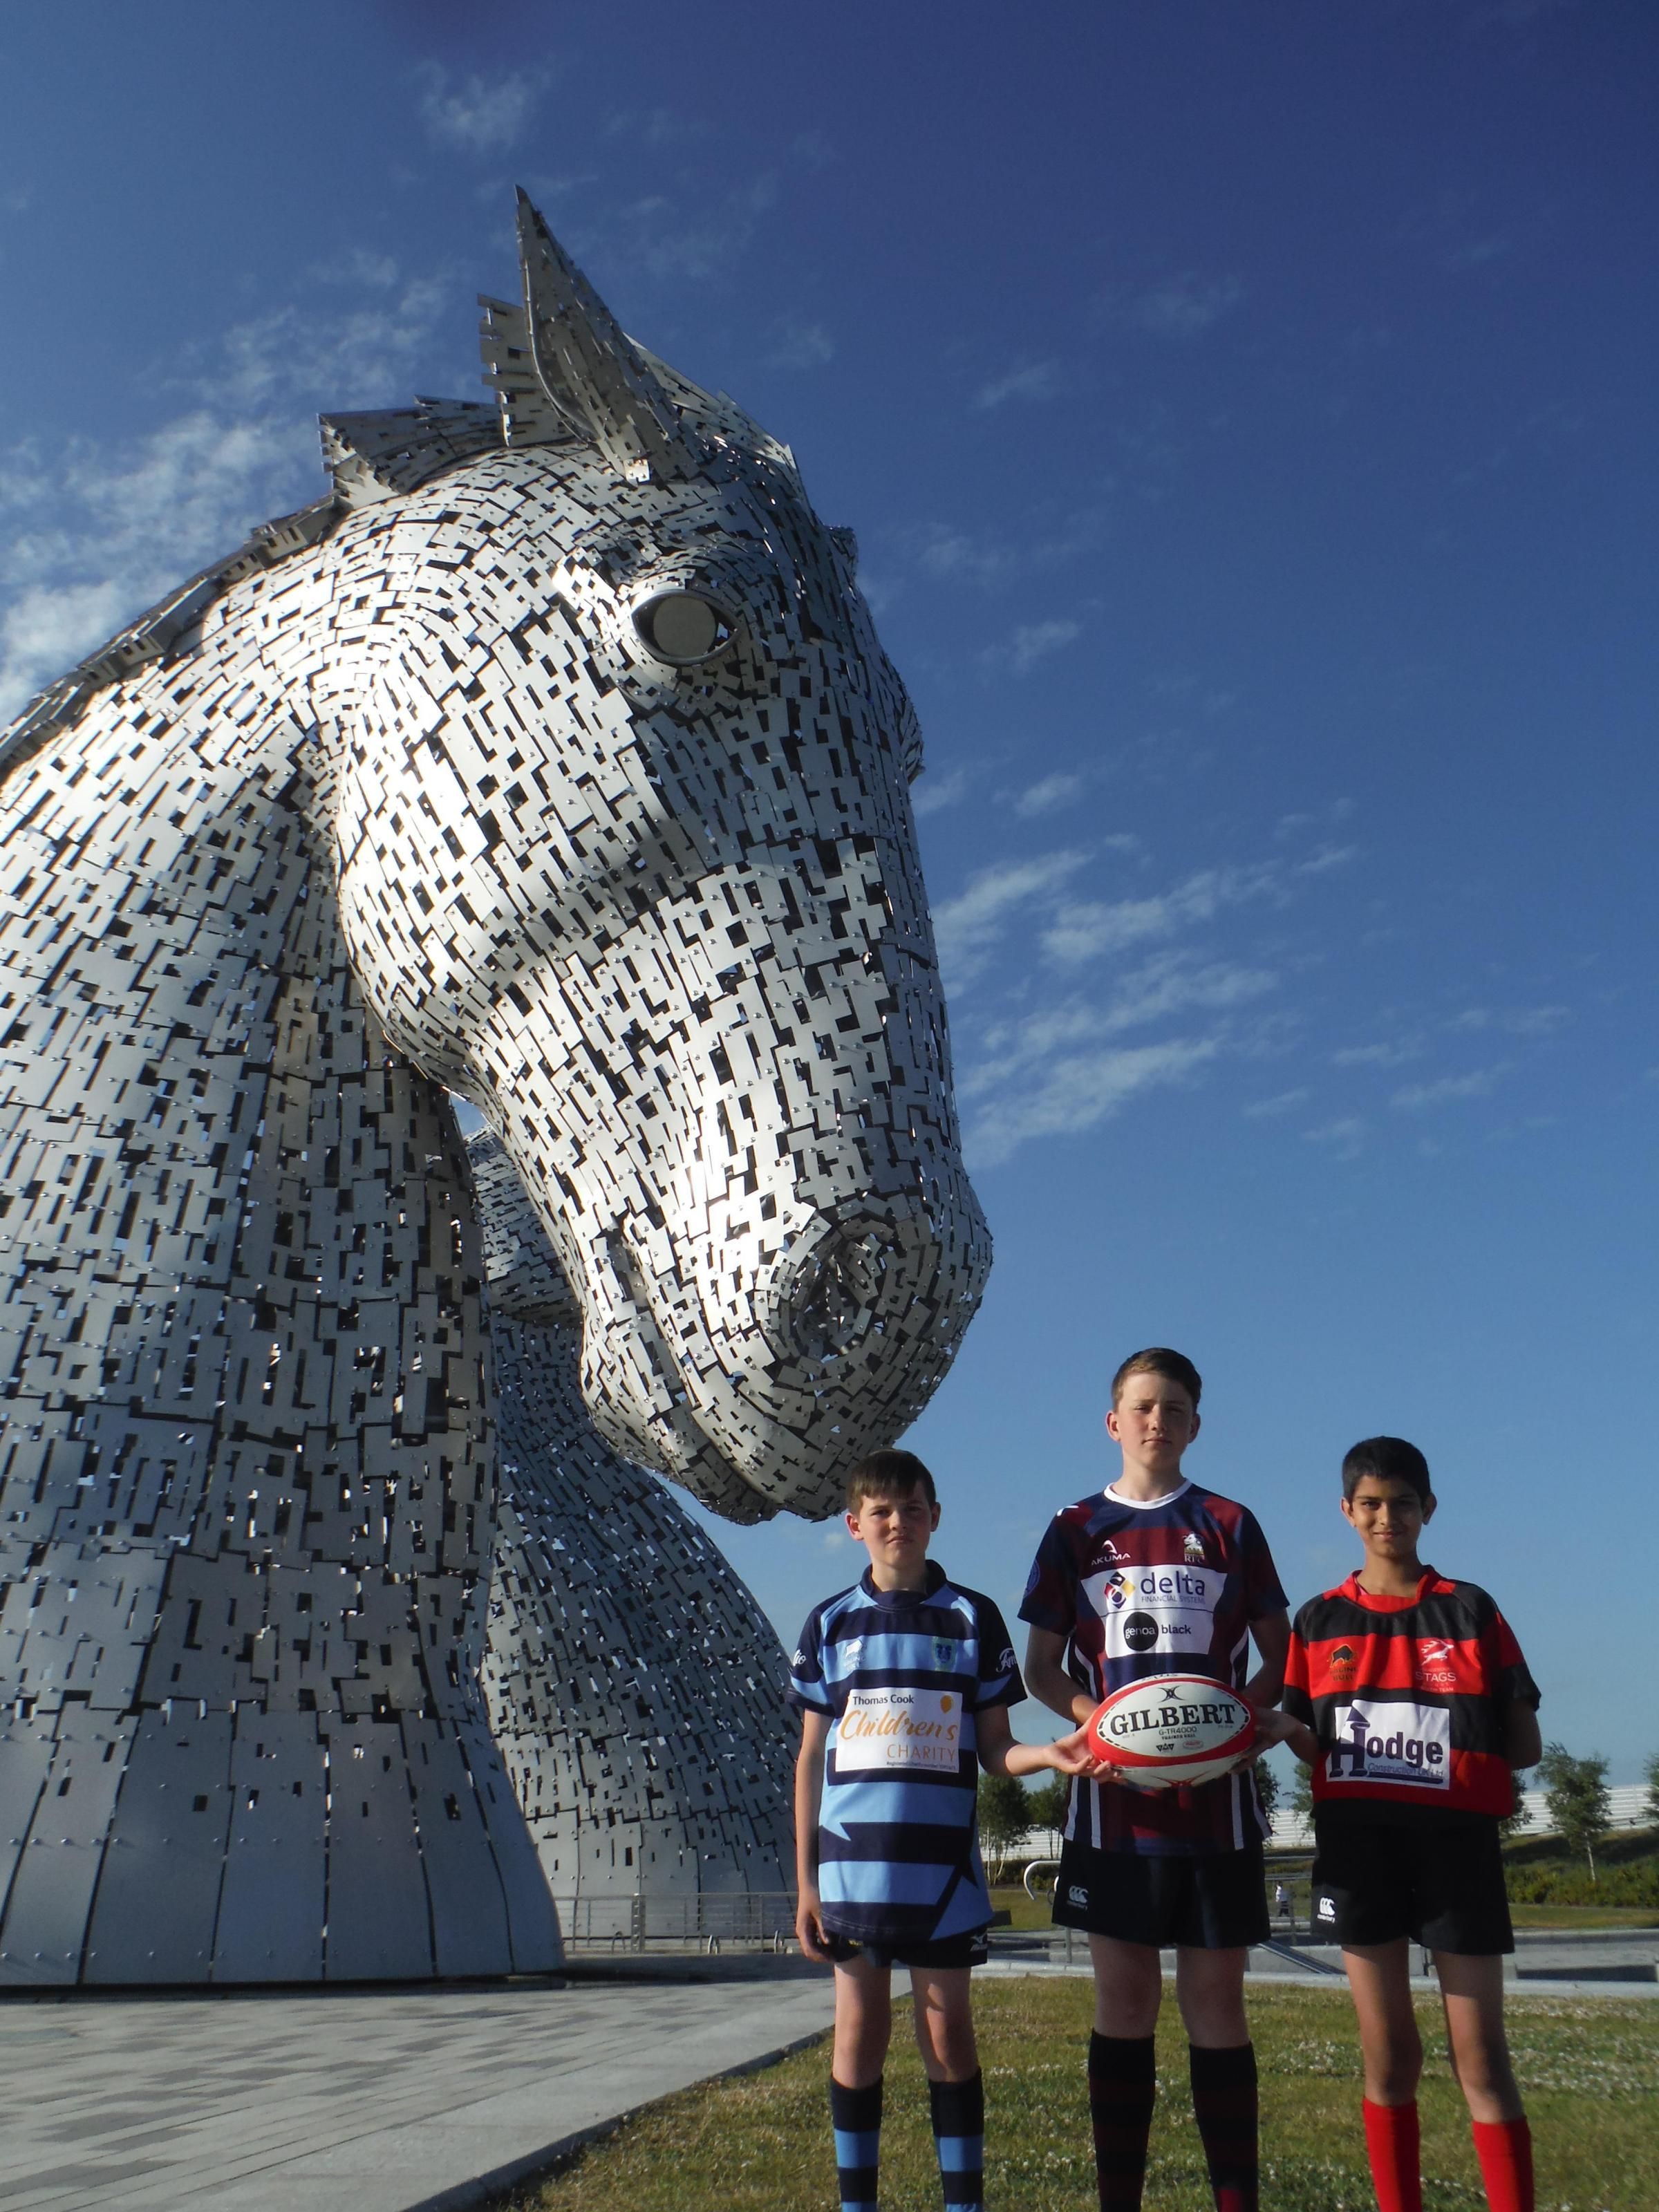 The Kelpies rugby side was officially launched last week